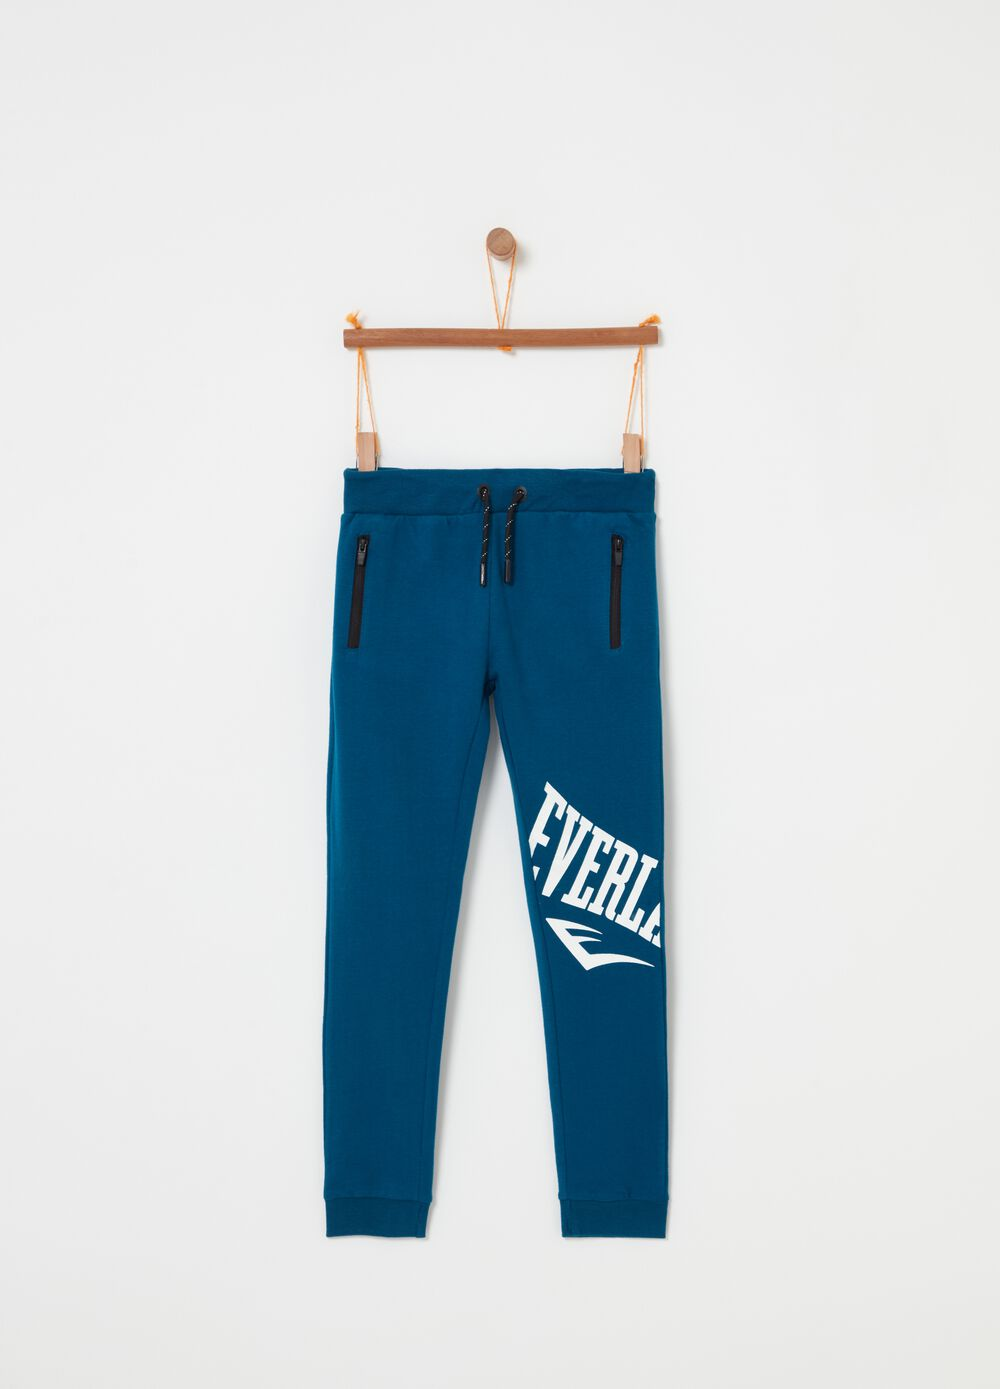 Everlast French terry trousers